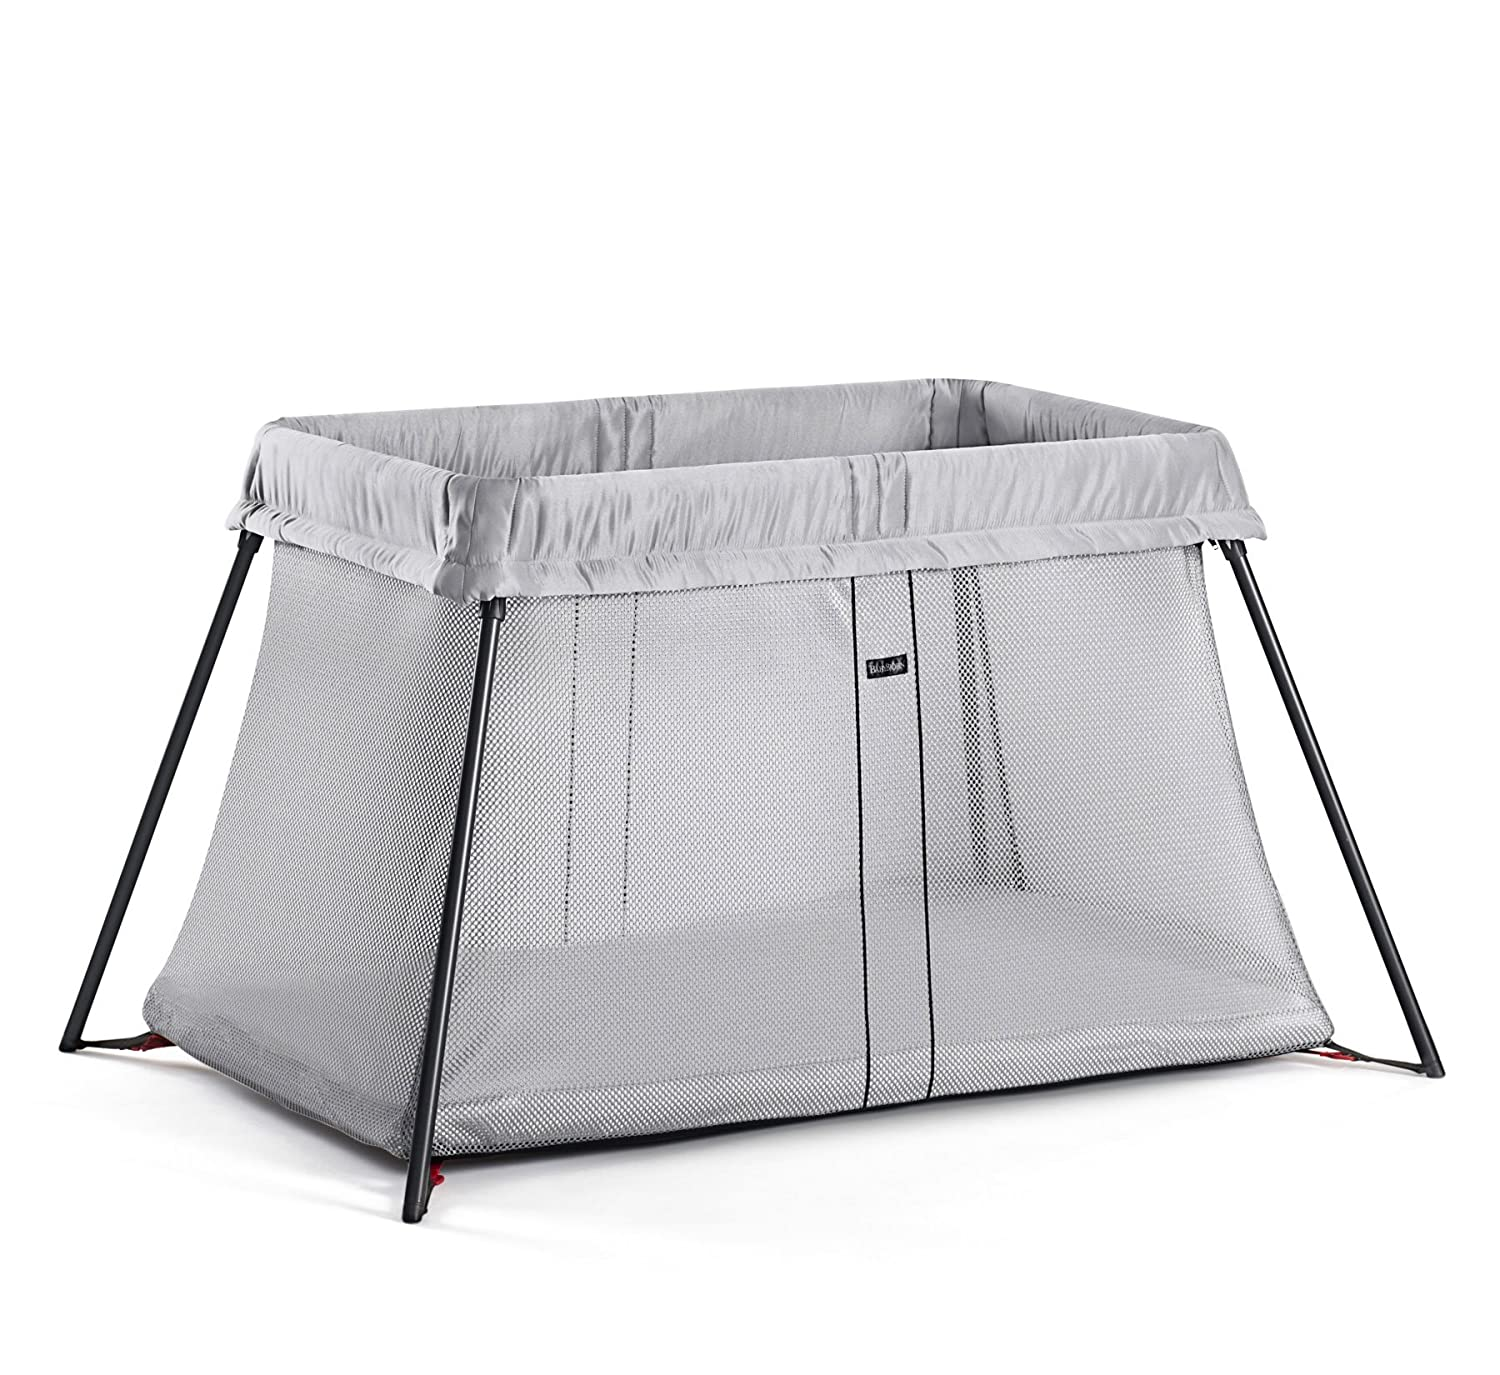 BABYBJÖRN Travel Cot with Fitted Sheet, Black Baby Bjorn 640901